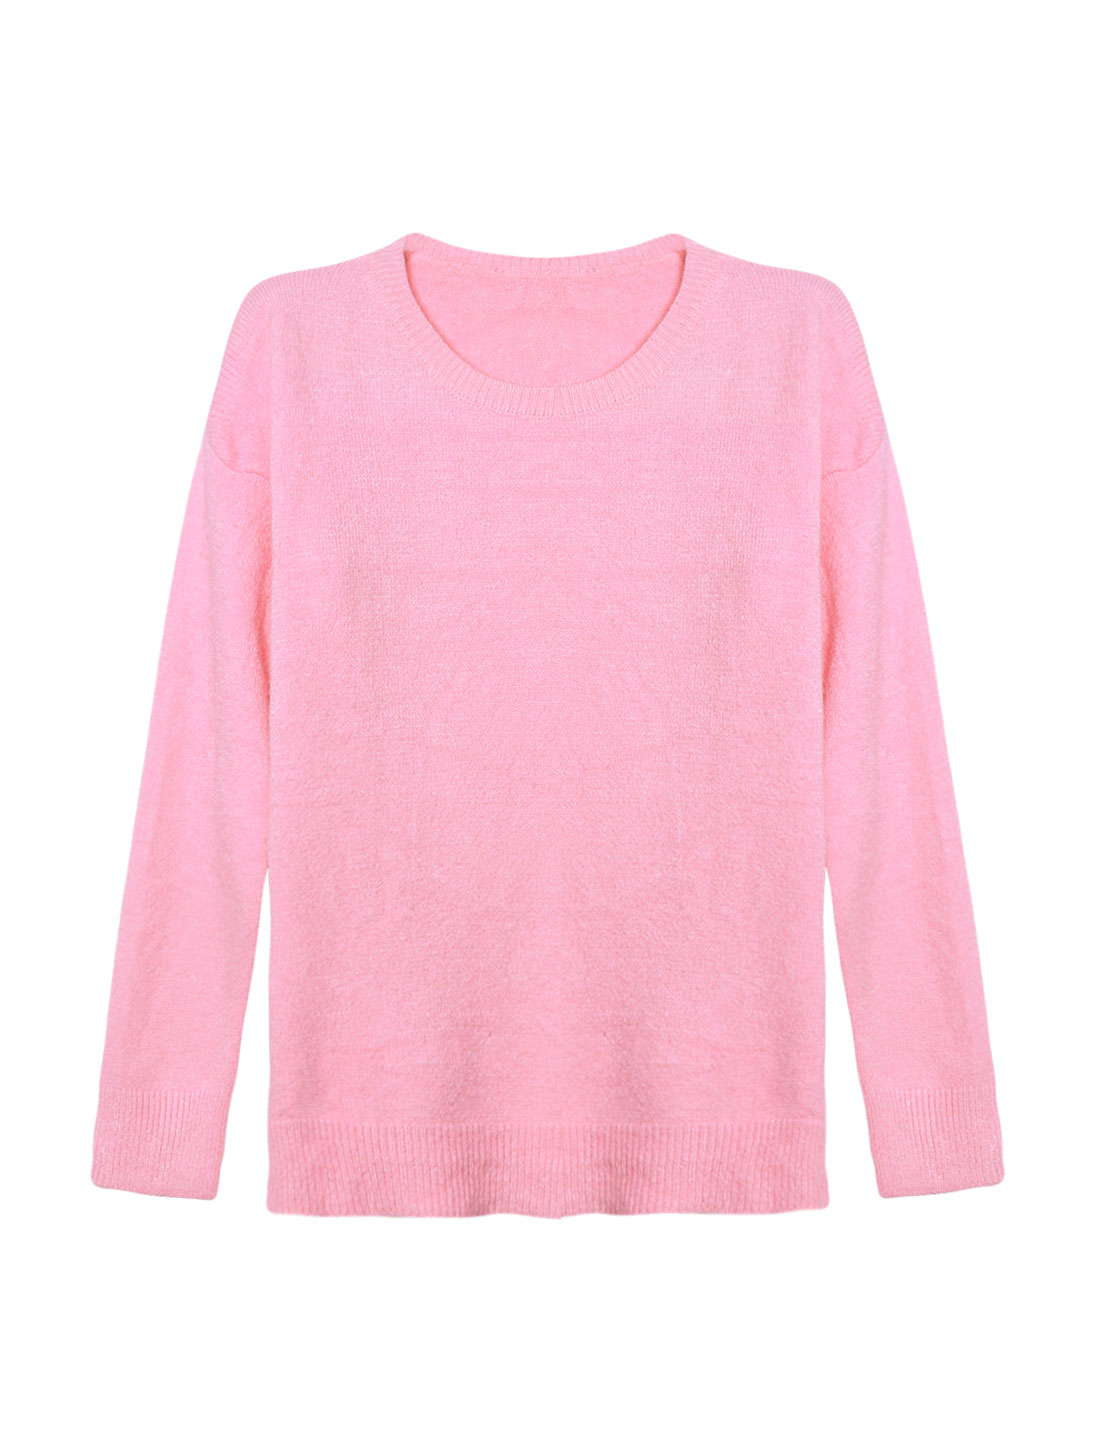 Woman Crew Neck Dolman Sleeves Ribbed Trim Knit Shirt Pink XS